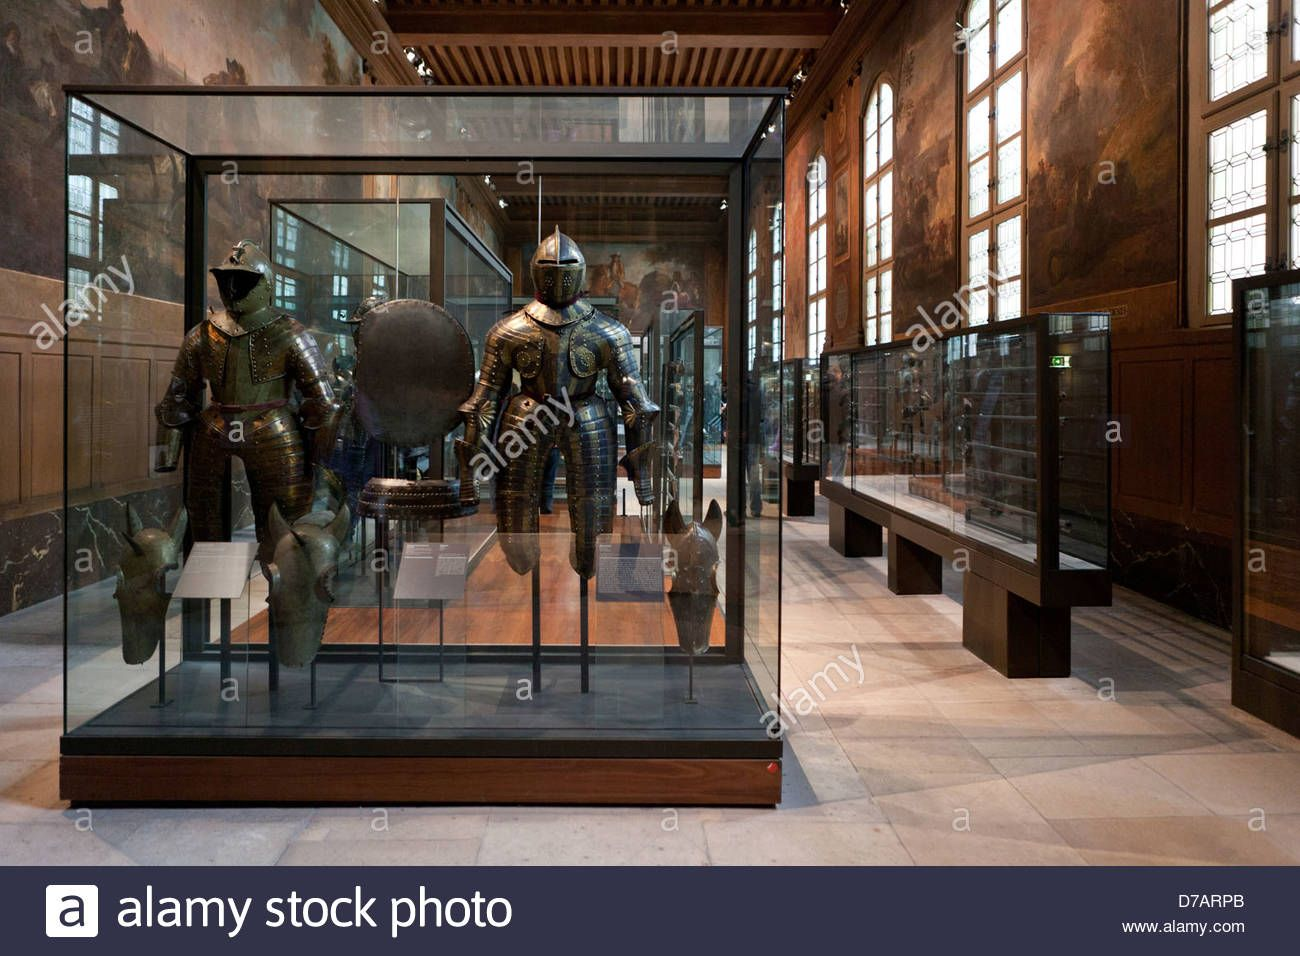 Europe France Paris War Museum Of The Hotel Des Invalides Stock Photo, Royalty Free Image: 56171875 - Alamy